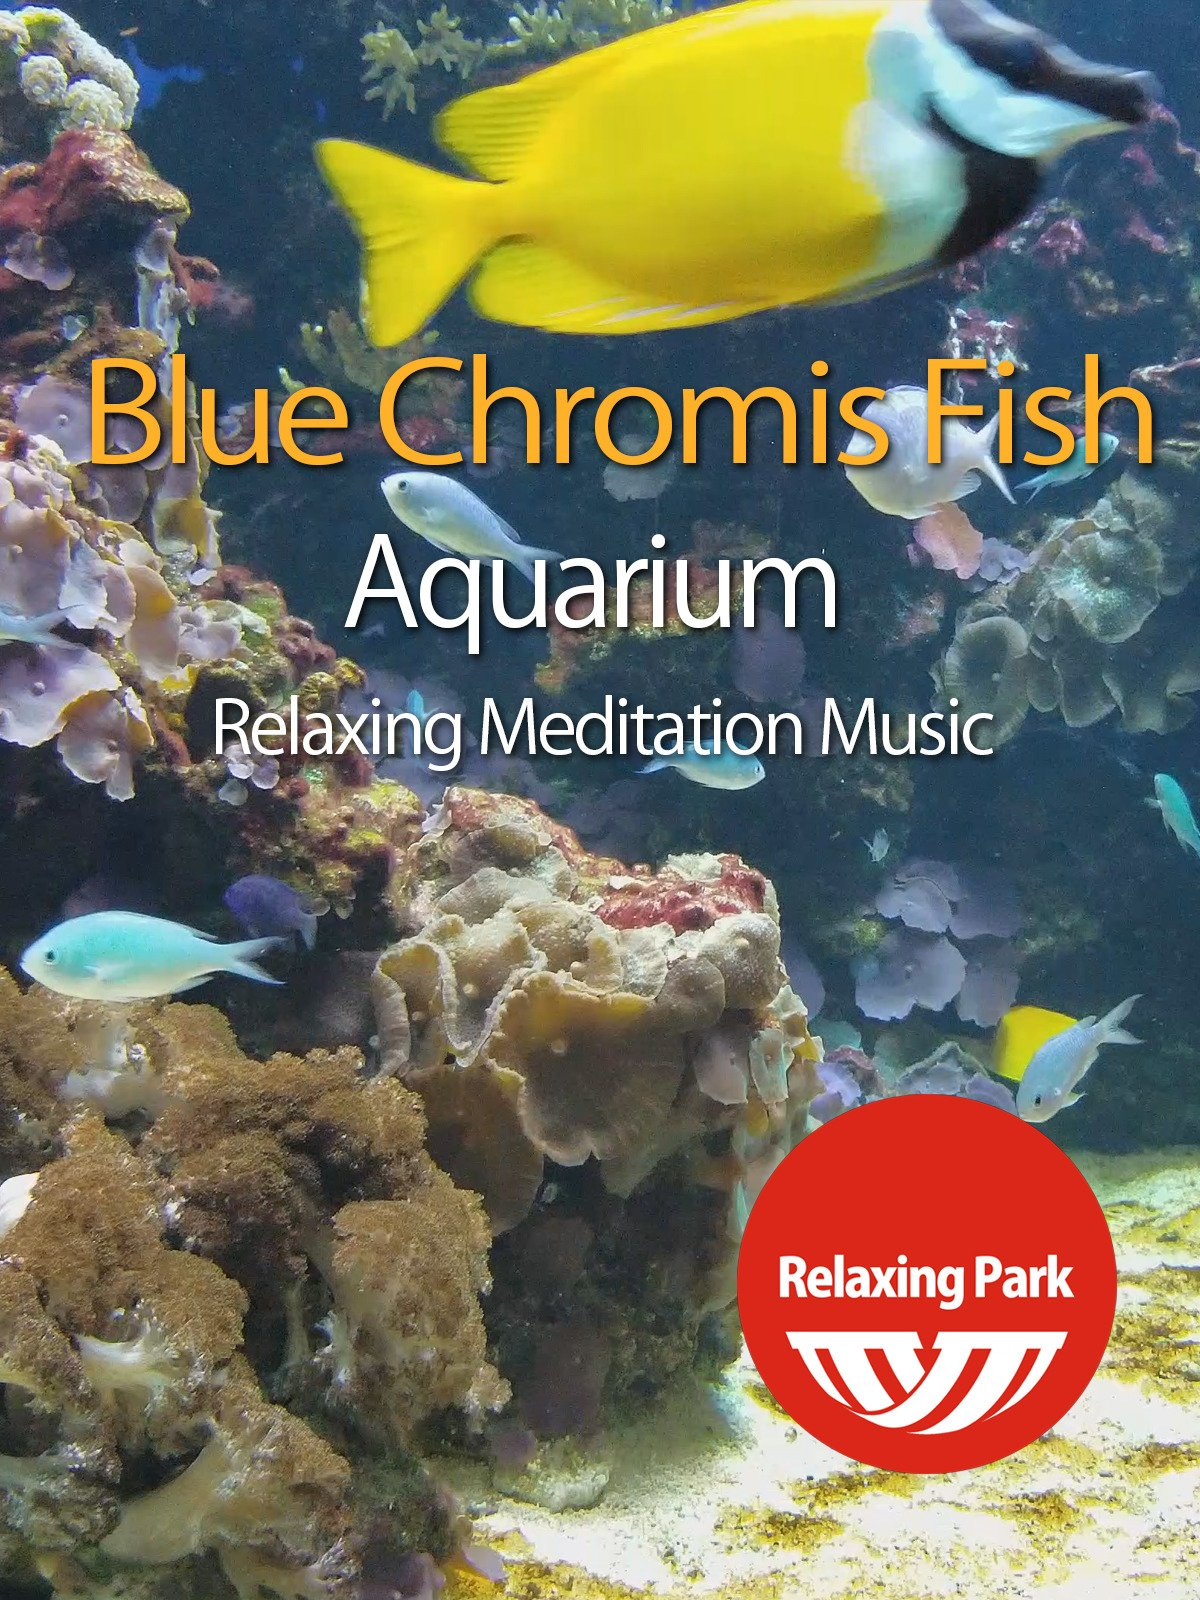 Blue Chromis Fish Aquarium with Relaxing Meditation Music